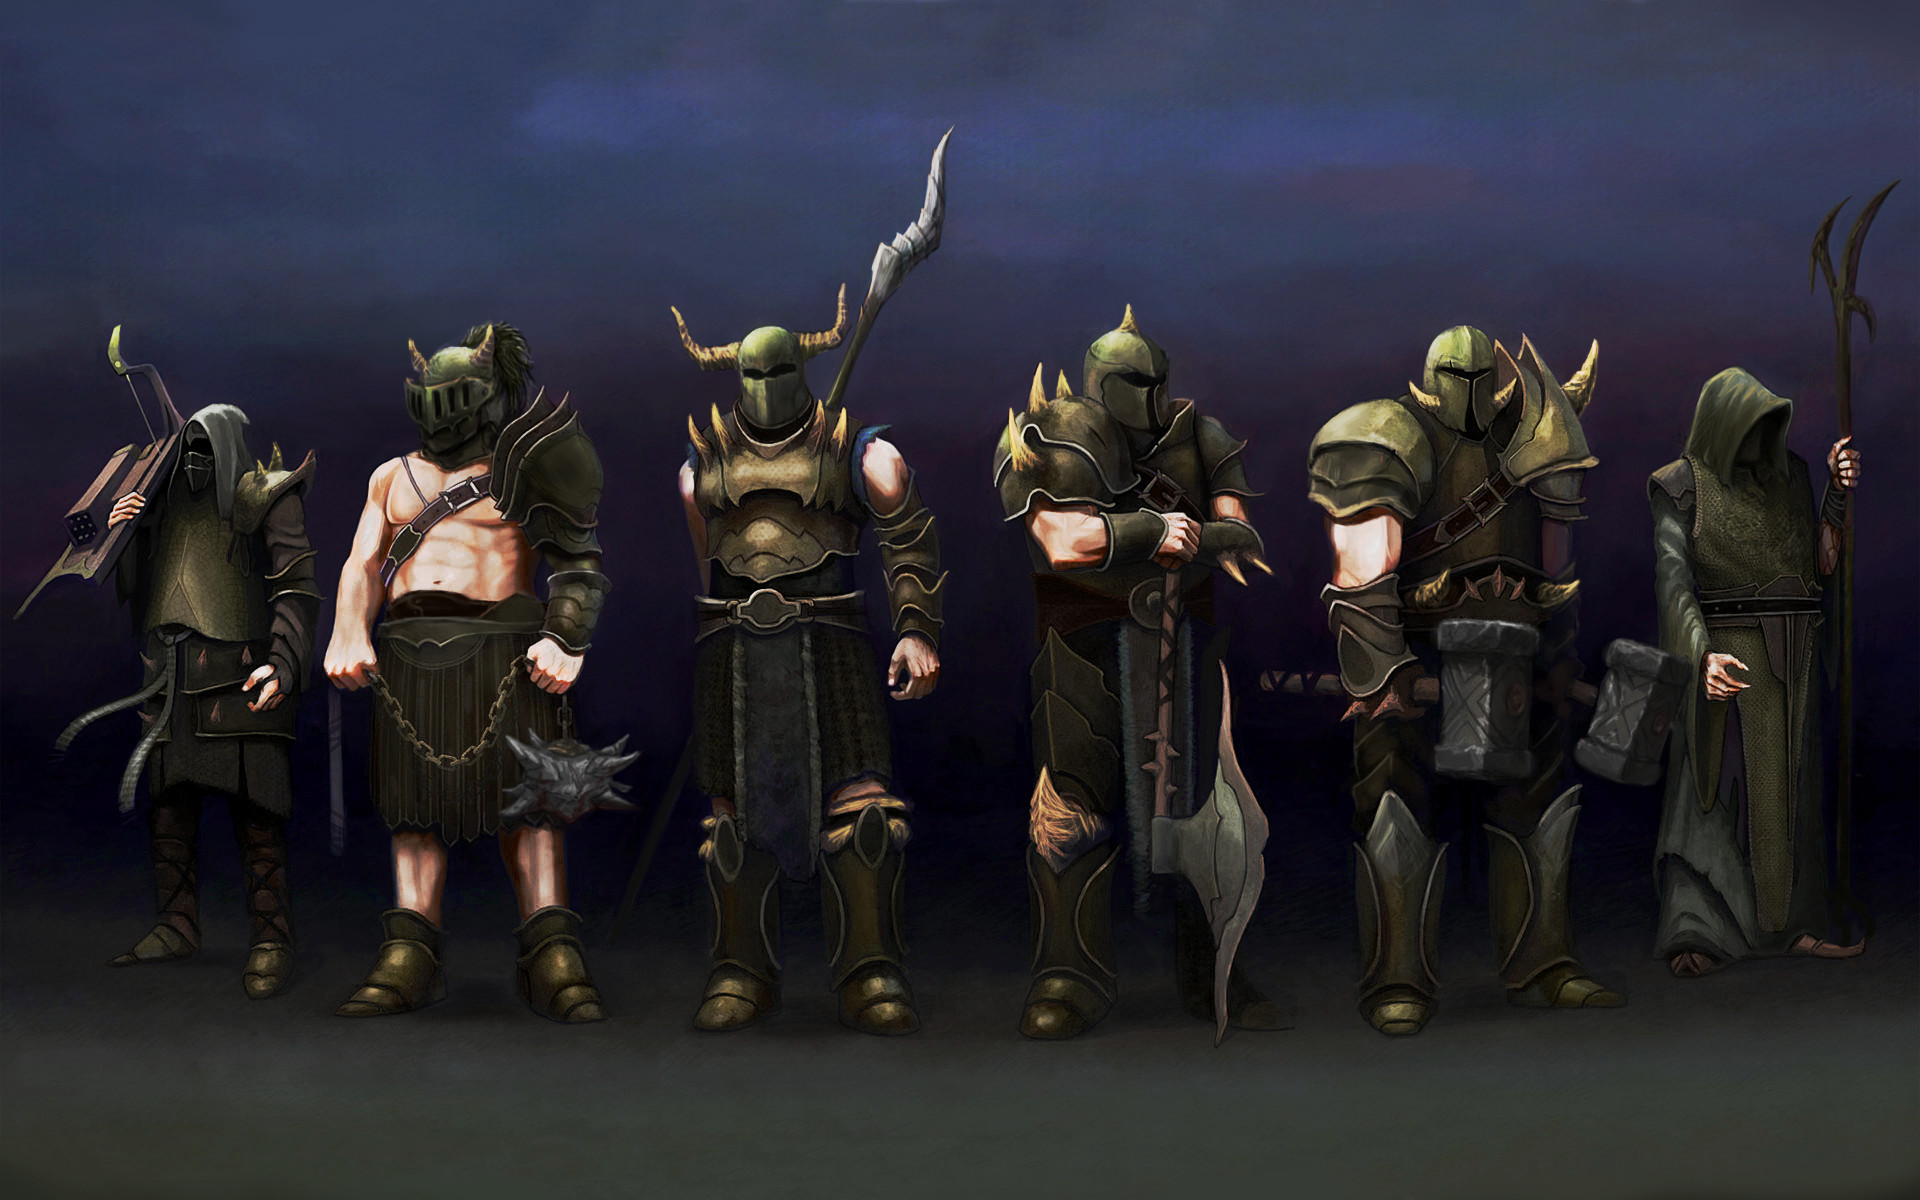 a bit more accurate Wallpaper of the Barrows Bros.